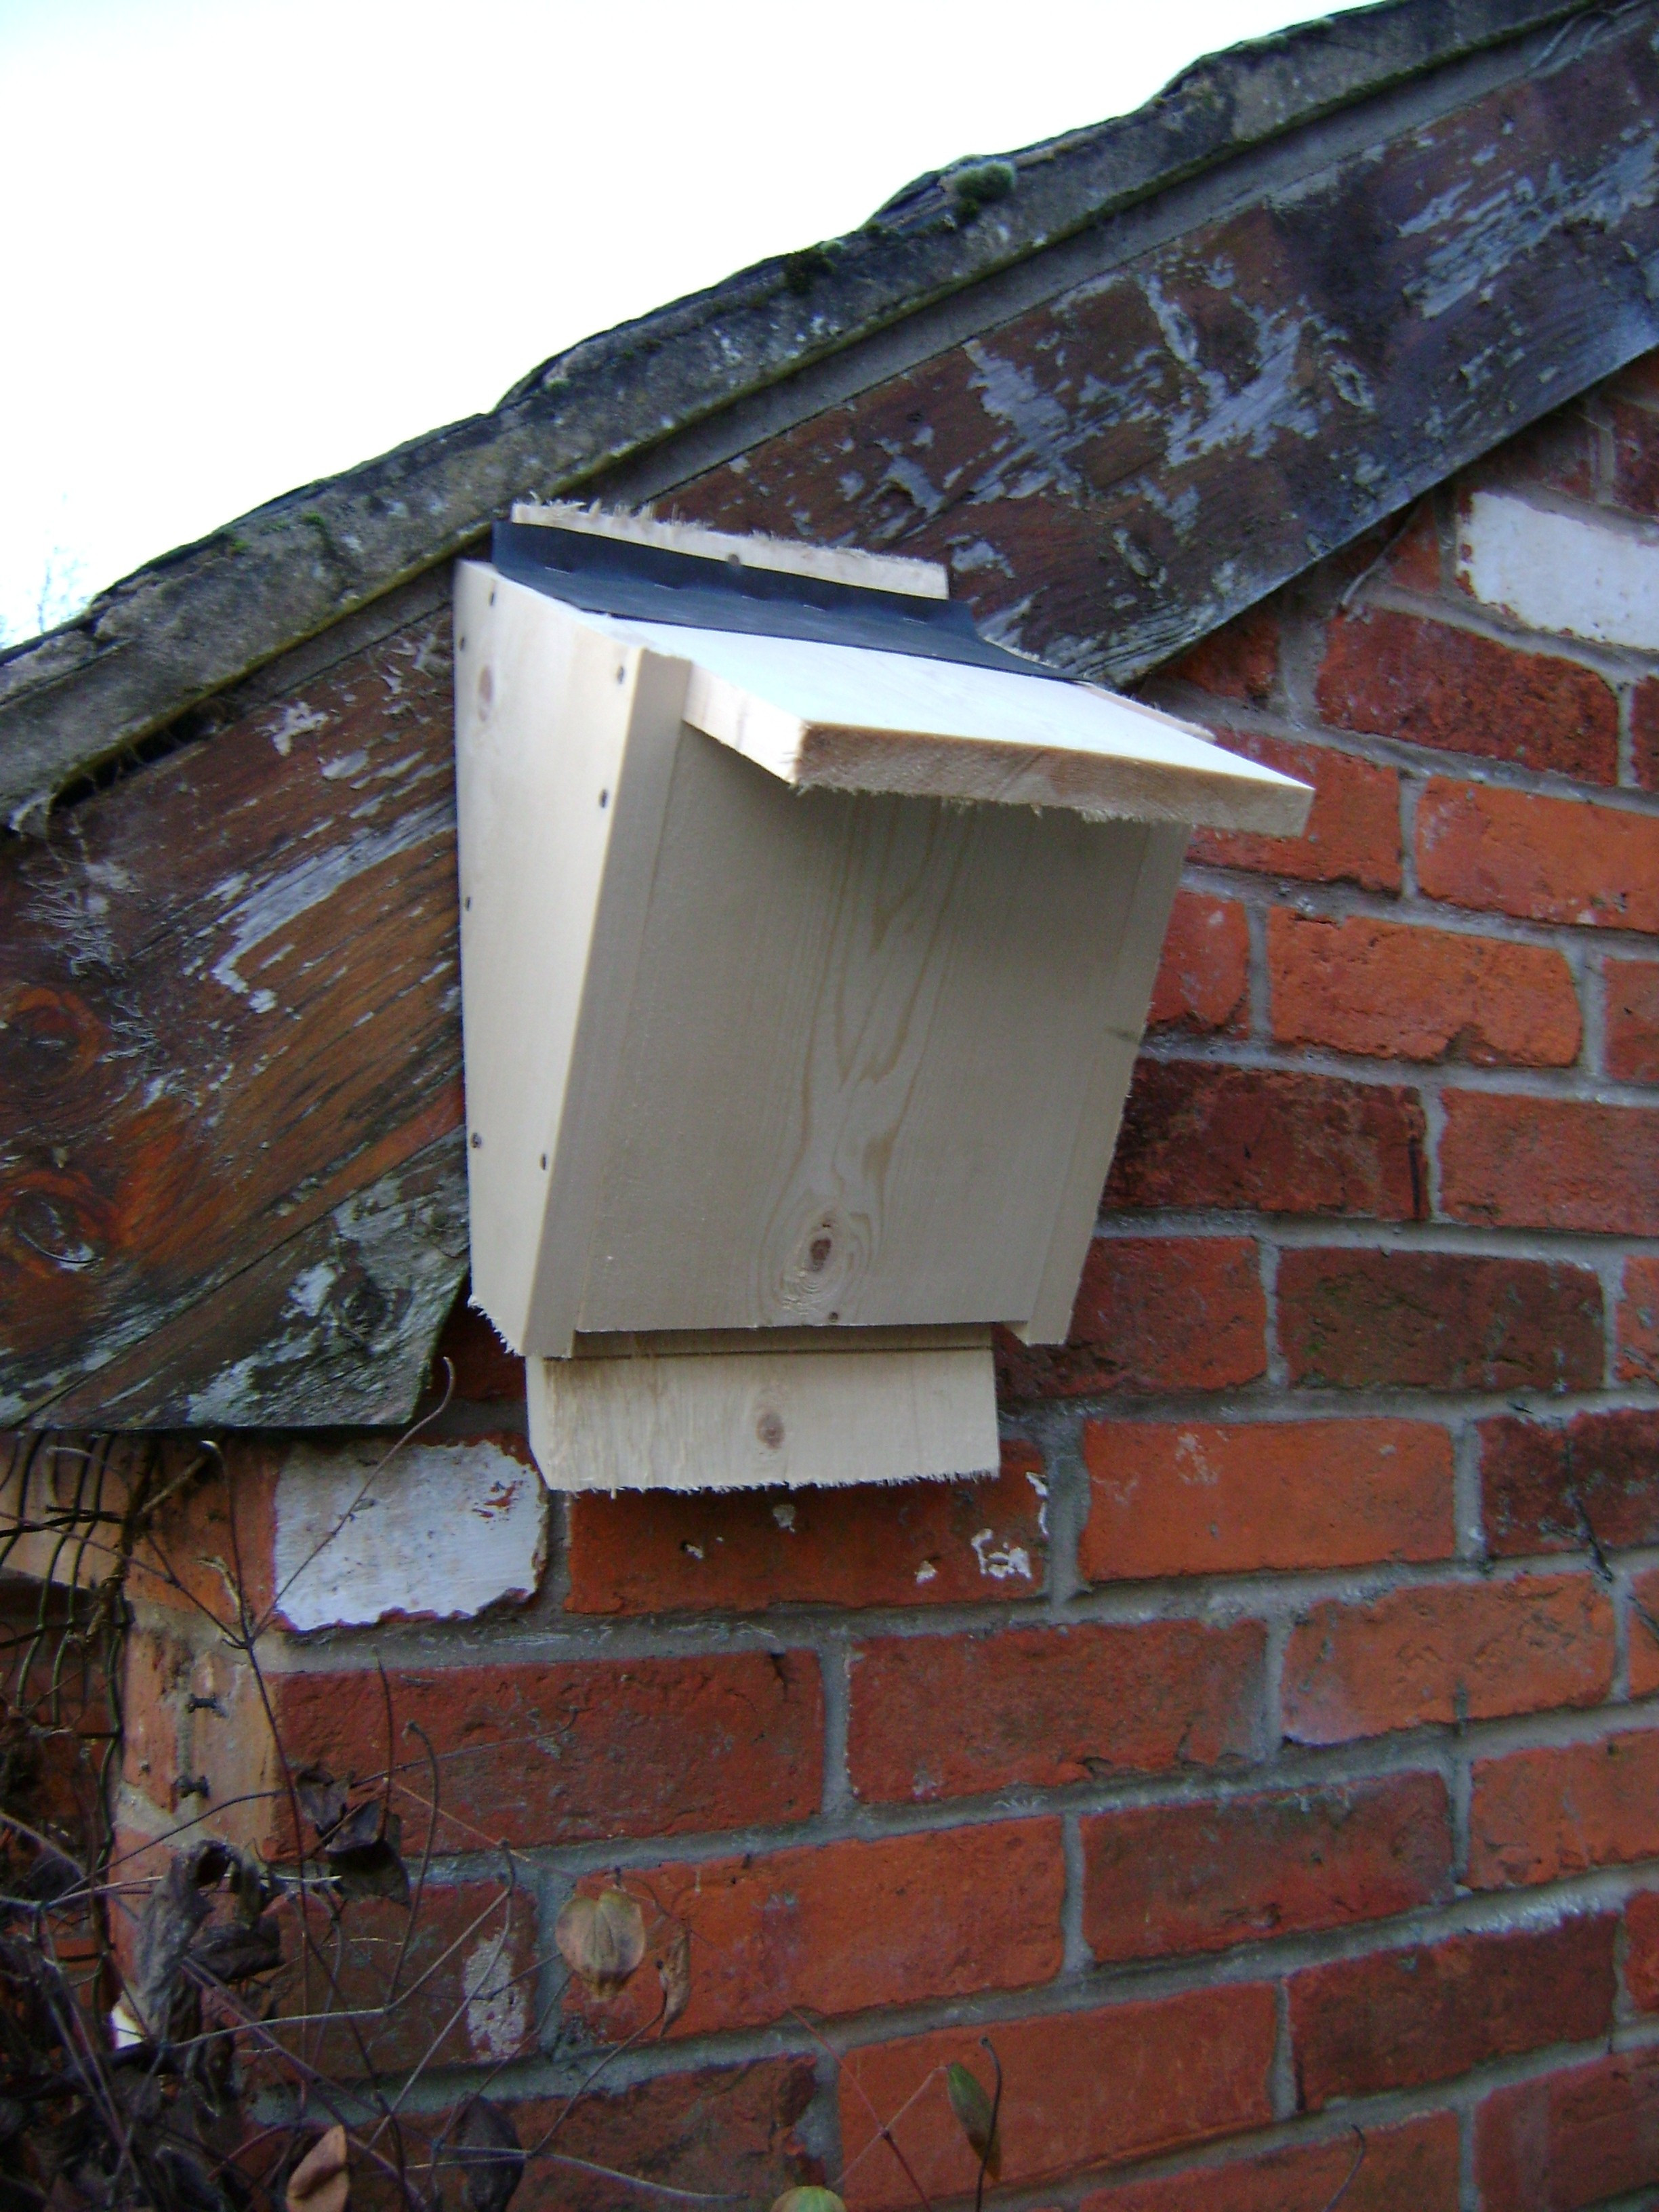 Best ideas about DIY Bat Box . Save or Pin Build a Bat Box Now.